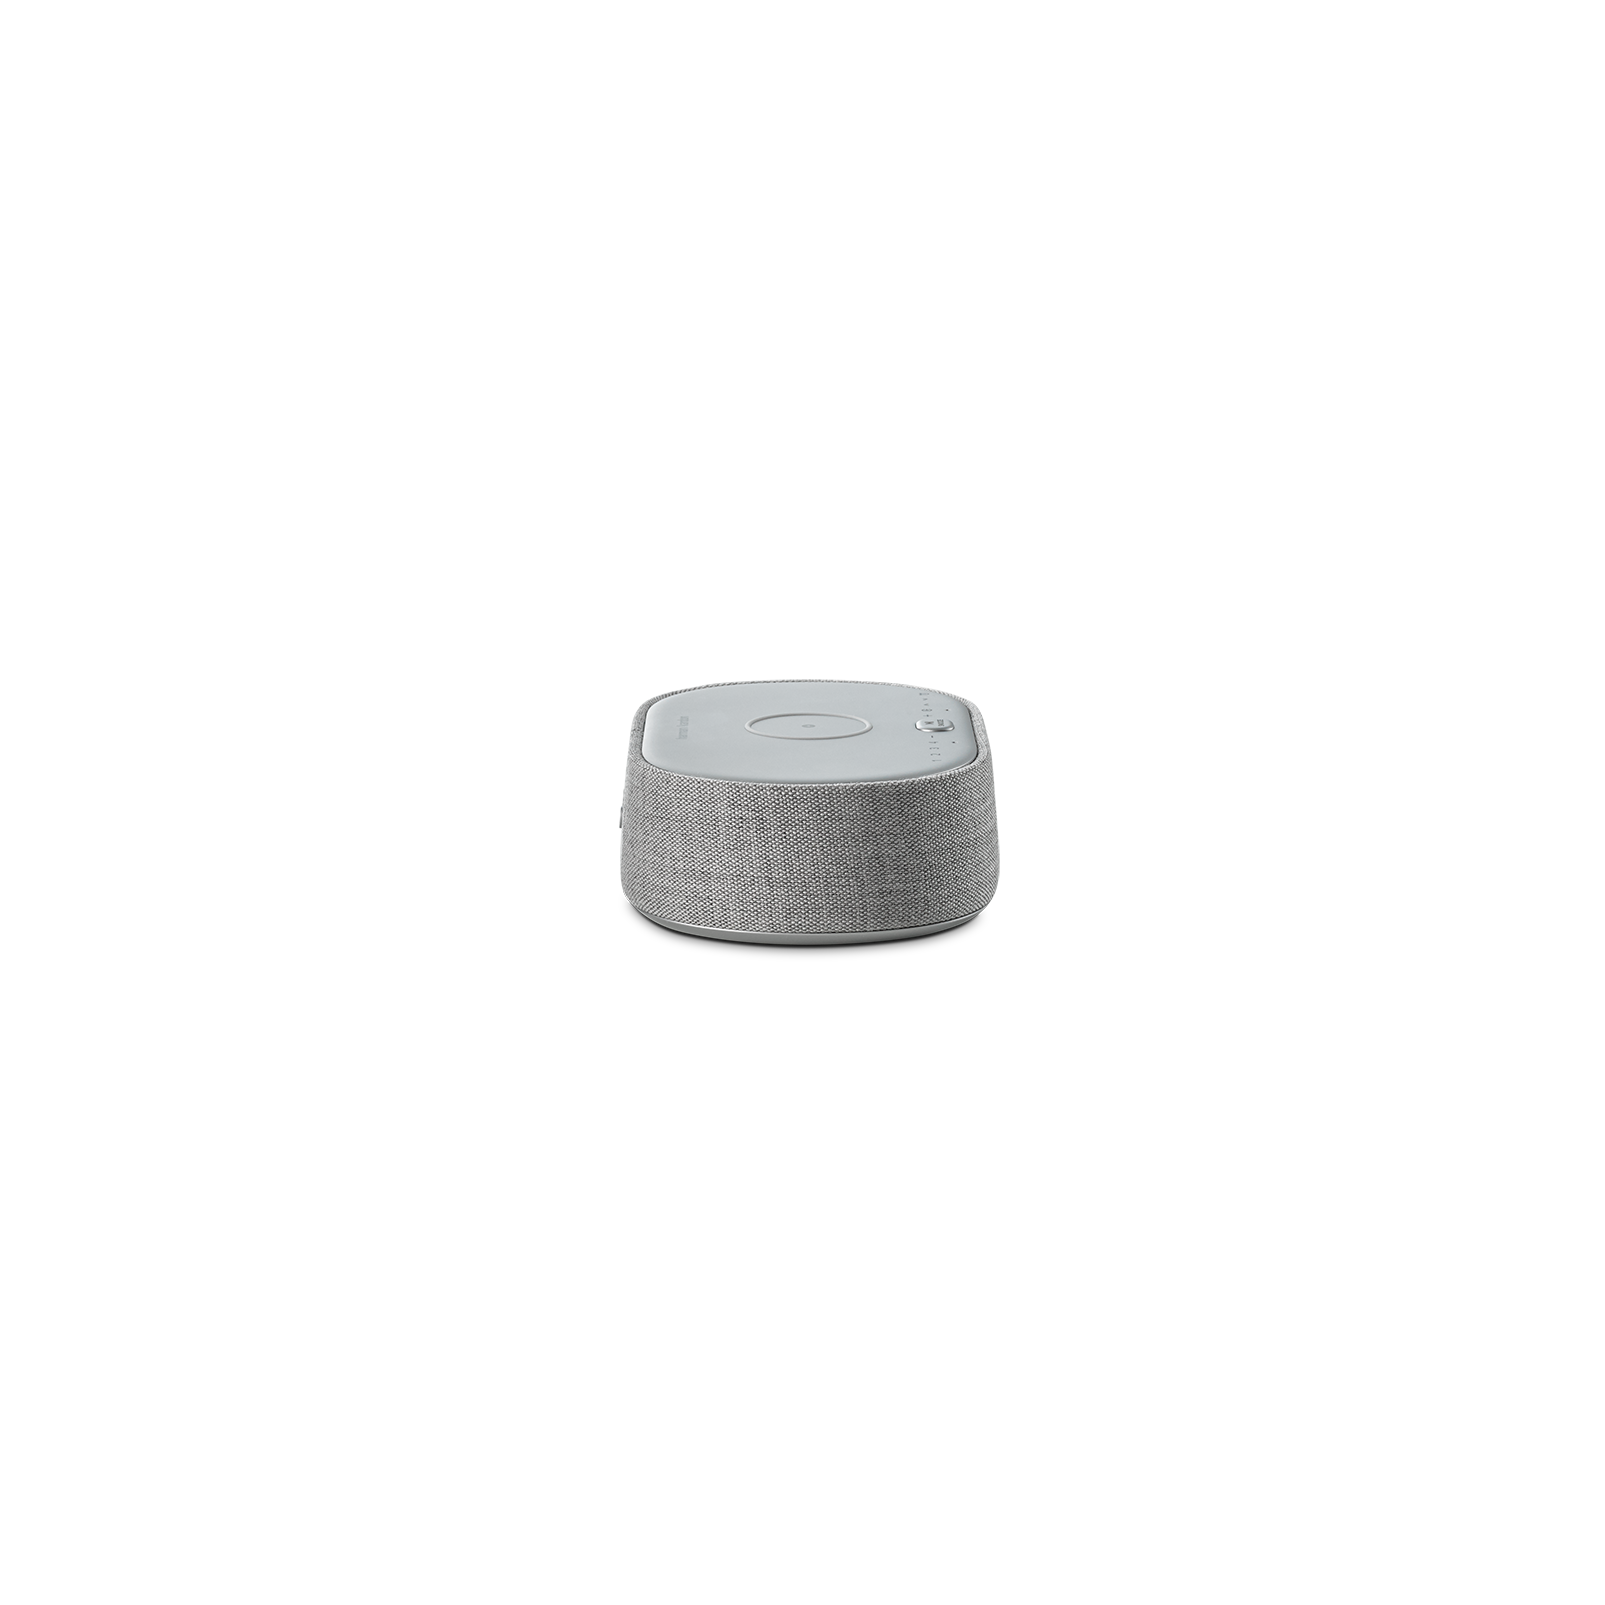 Harman Kardon Citation Oasis - Grey - Voice-controlled speaker with DAB/DAB+ radio and wireless phone charging - Left